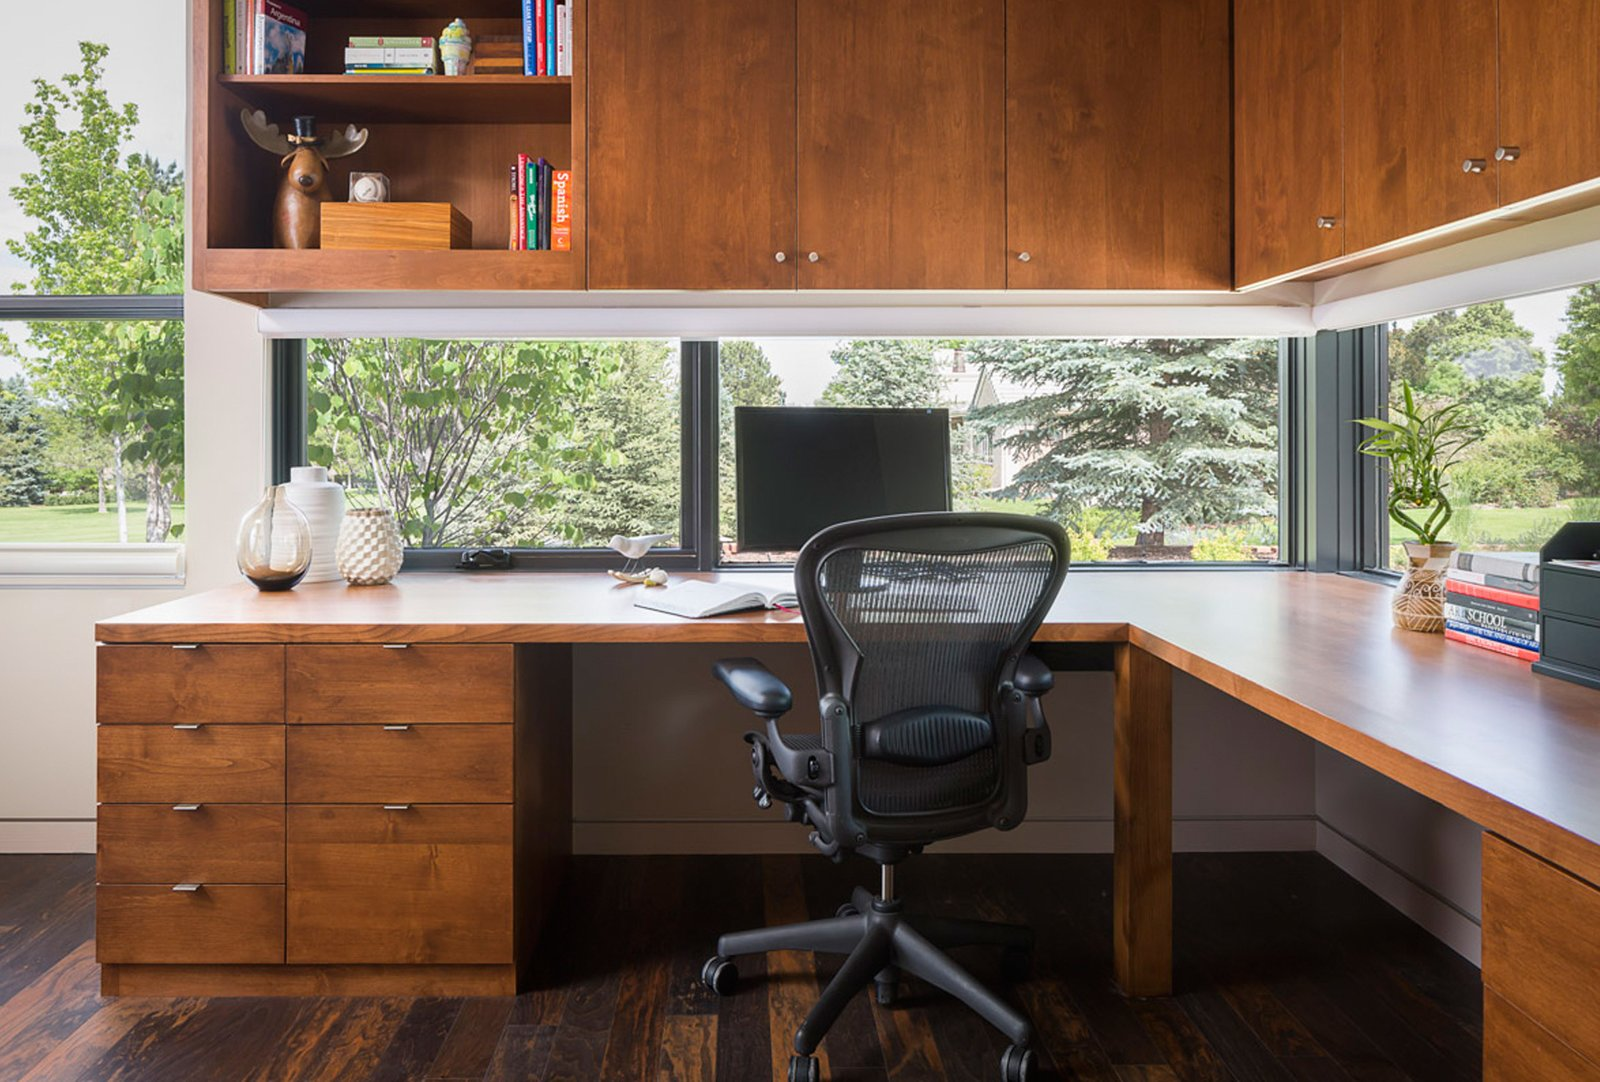 Windows at the desk level are integrated into the cabinets and provide views of the golf course.  Modern Golf Course Home by HMHAI